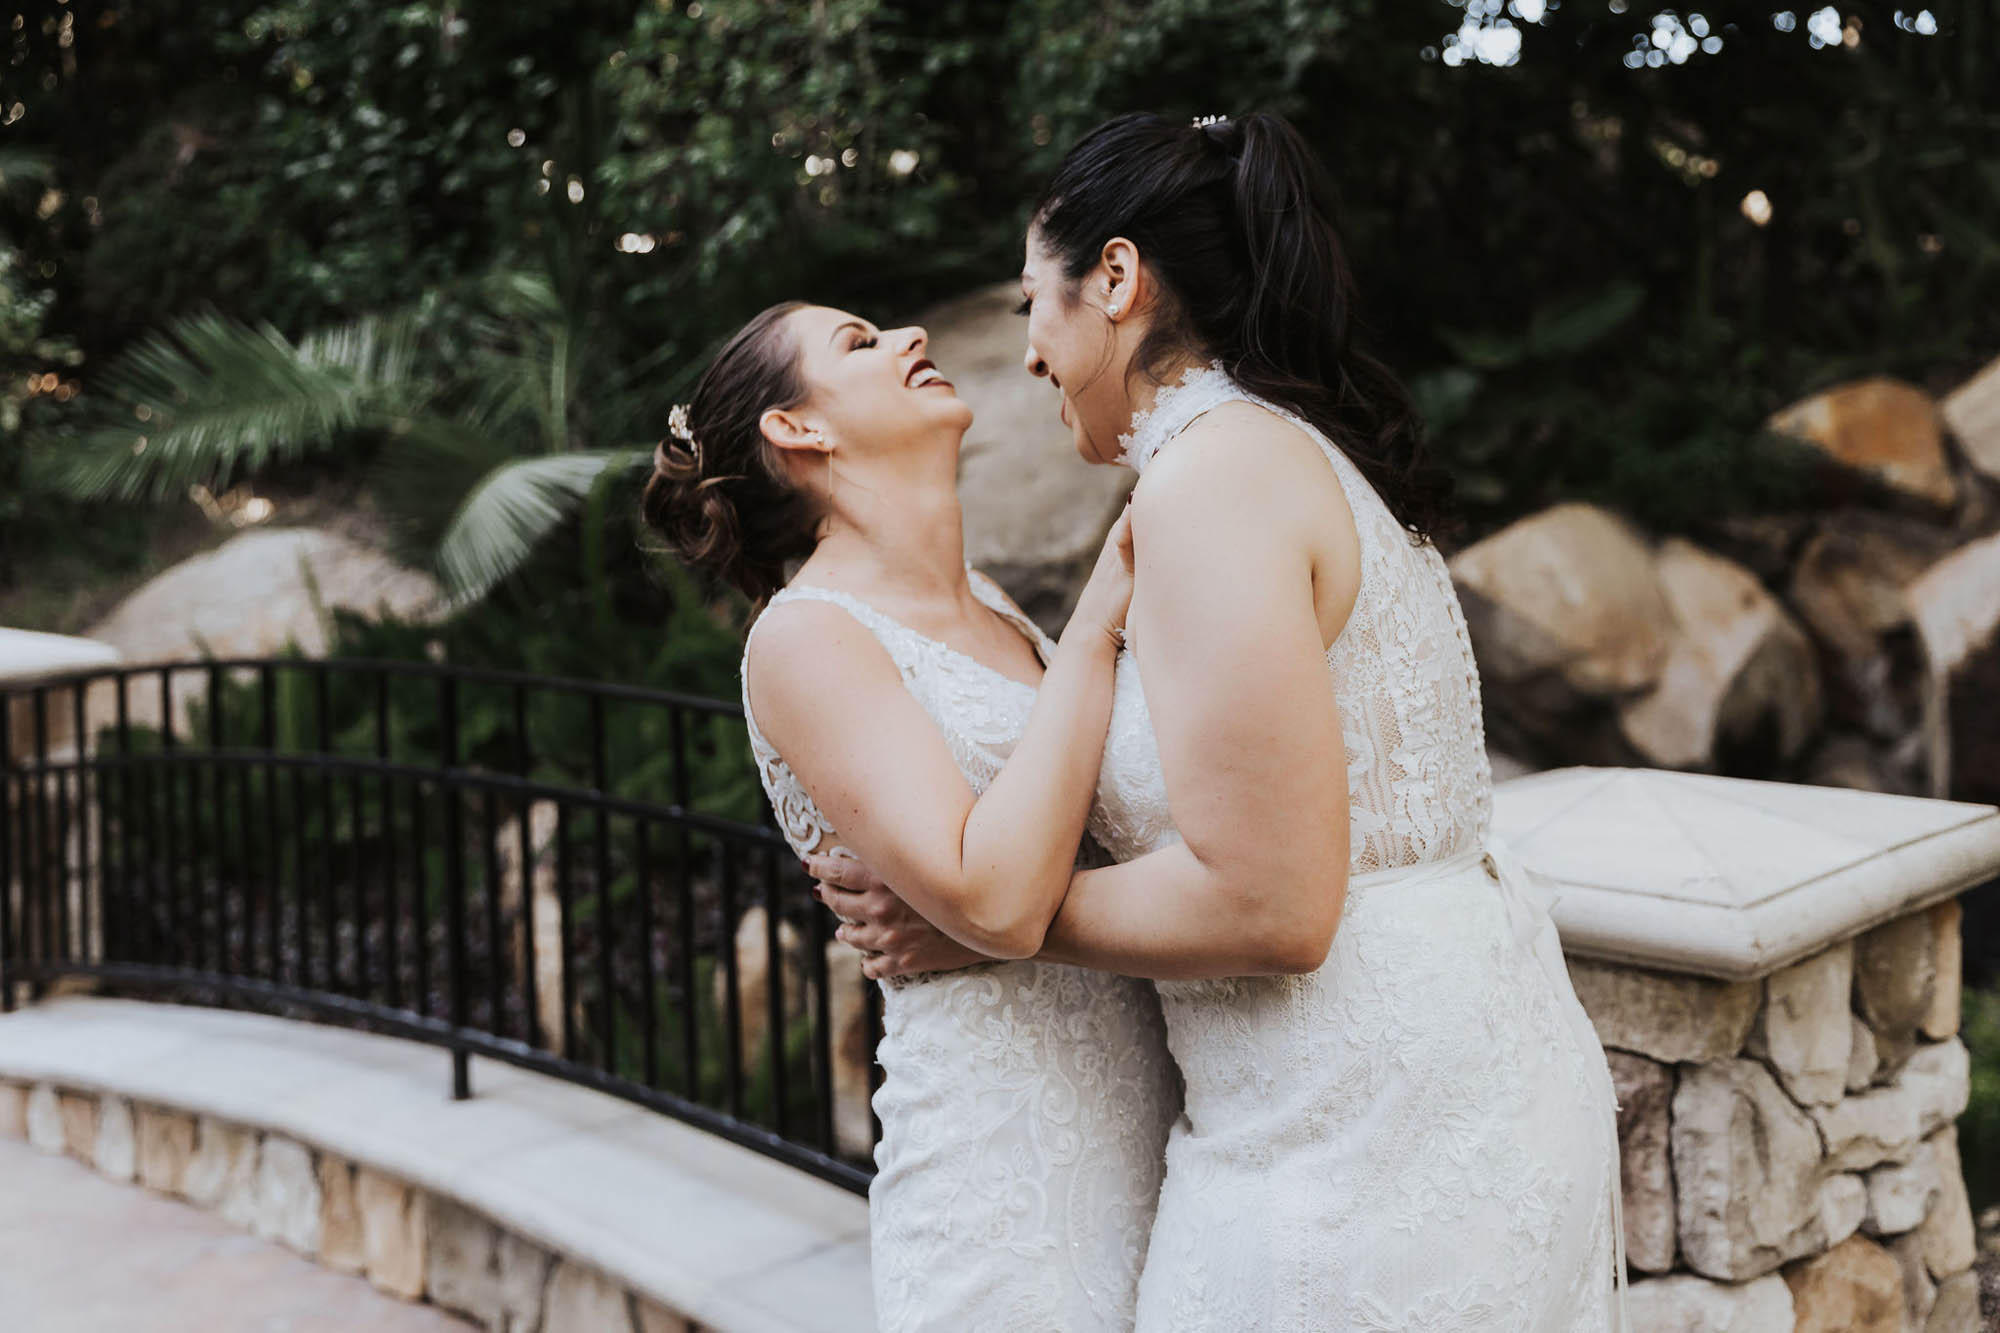 Traditional Same-Sex Wedding - Dancing With Her - Love Wins